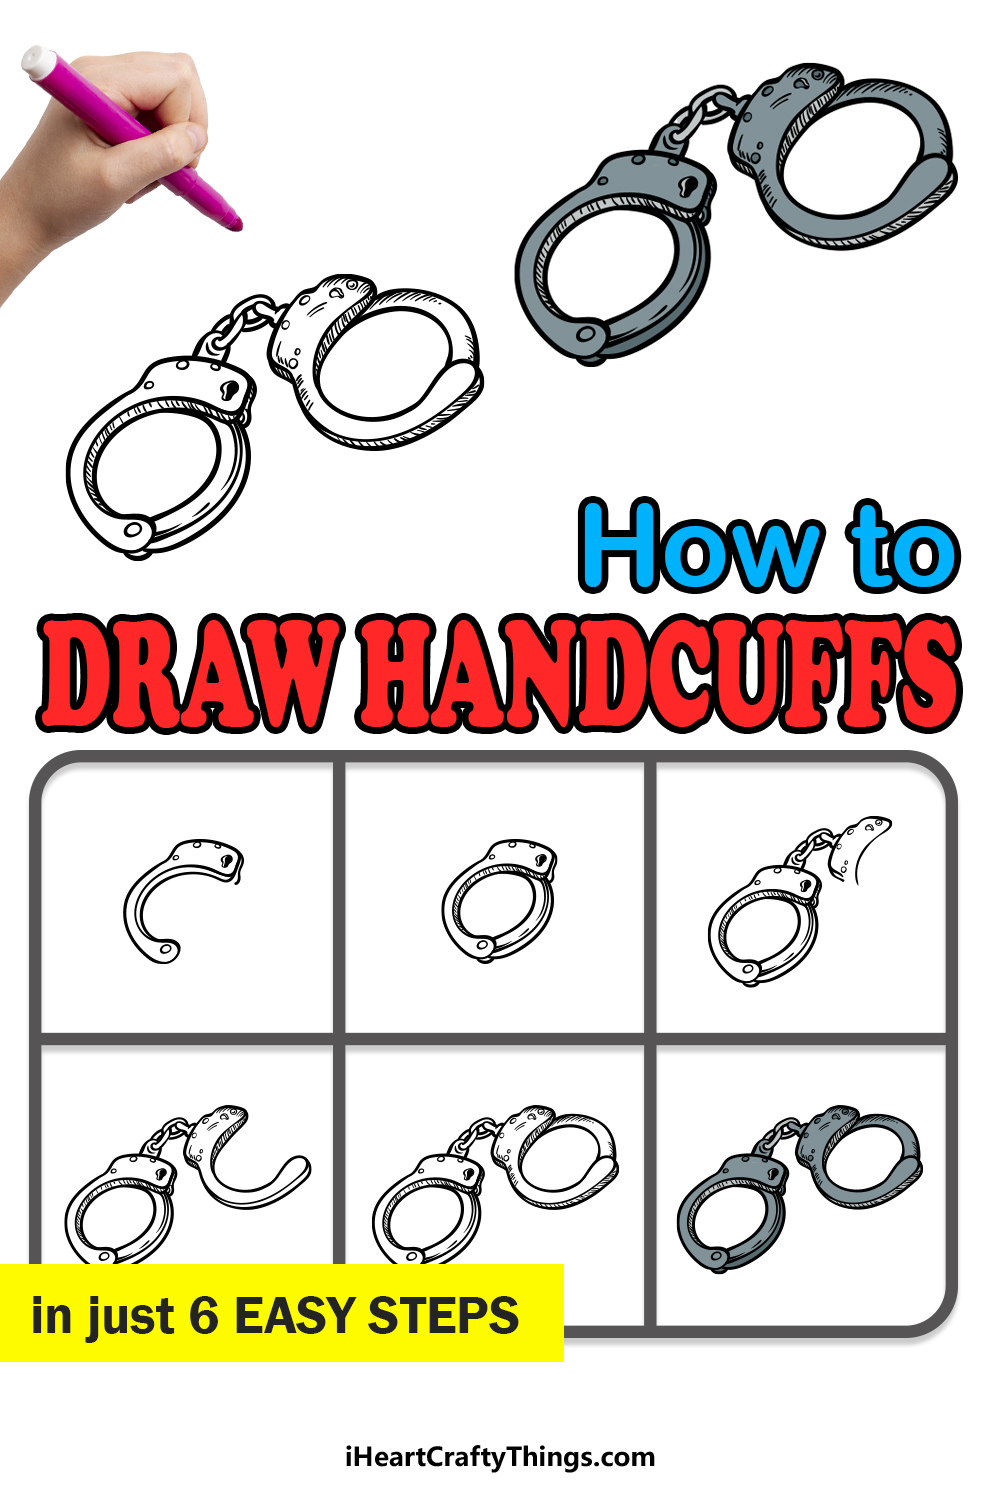 how to draw handcuffs in 6 easy steps